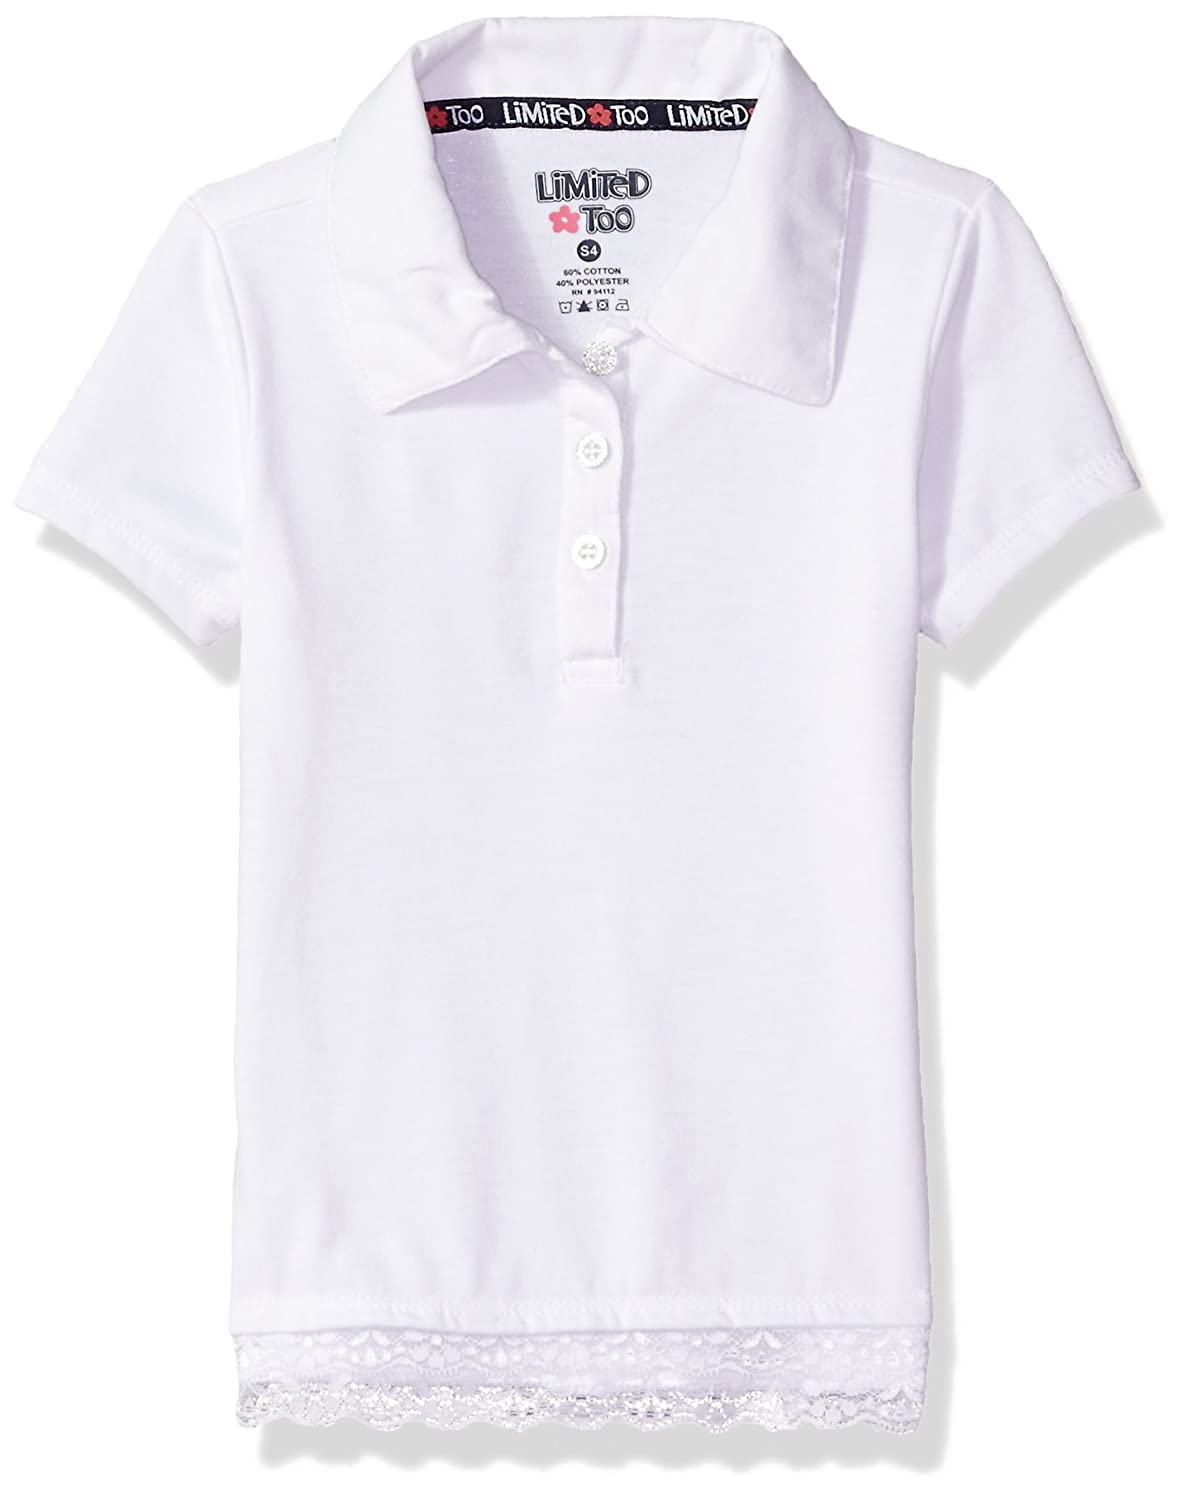 More Styles Available Classic White Limited Too Girls Polo Shirt 4